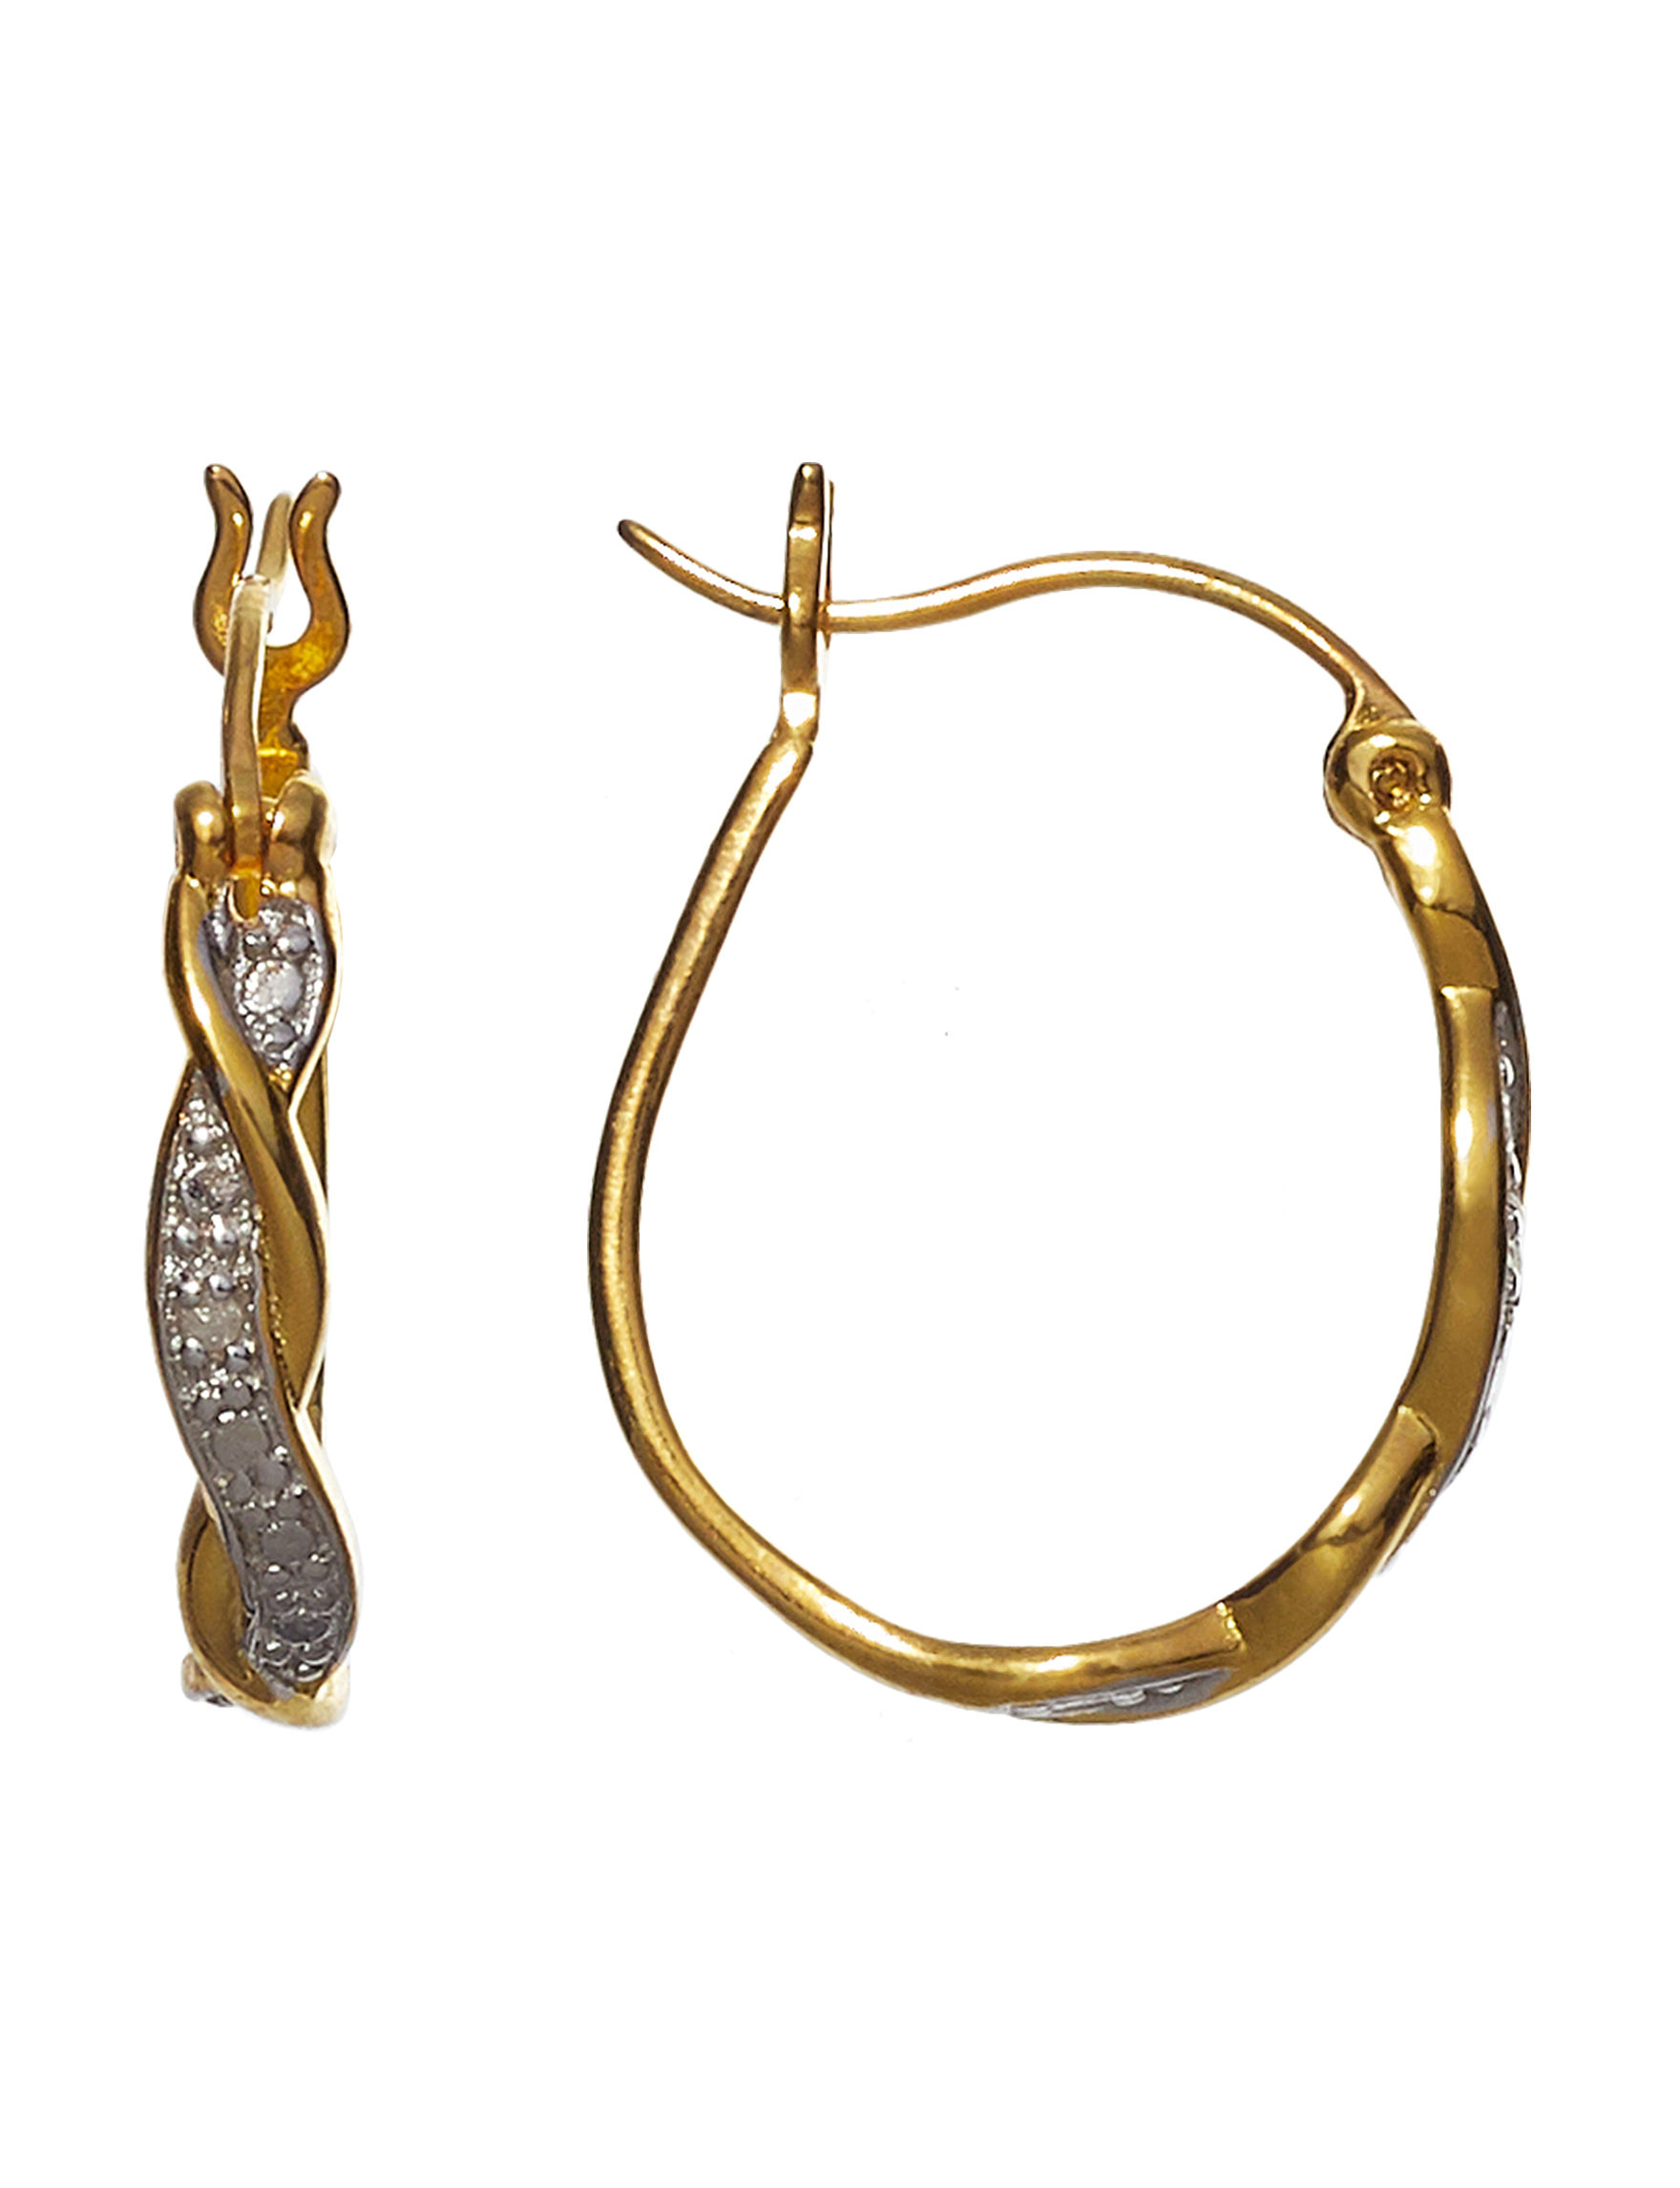 Marsala Gold / Gemstone Hoops Earrings Fine Jewelry